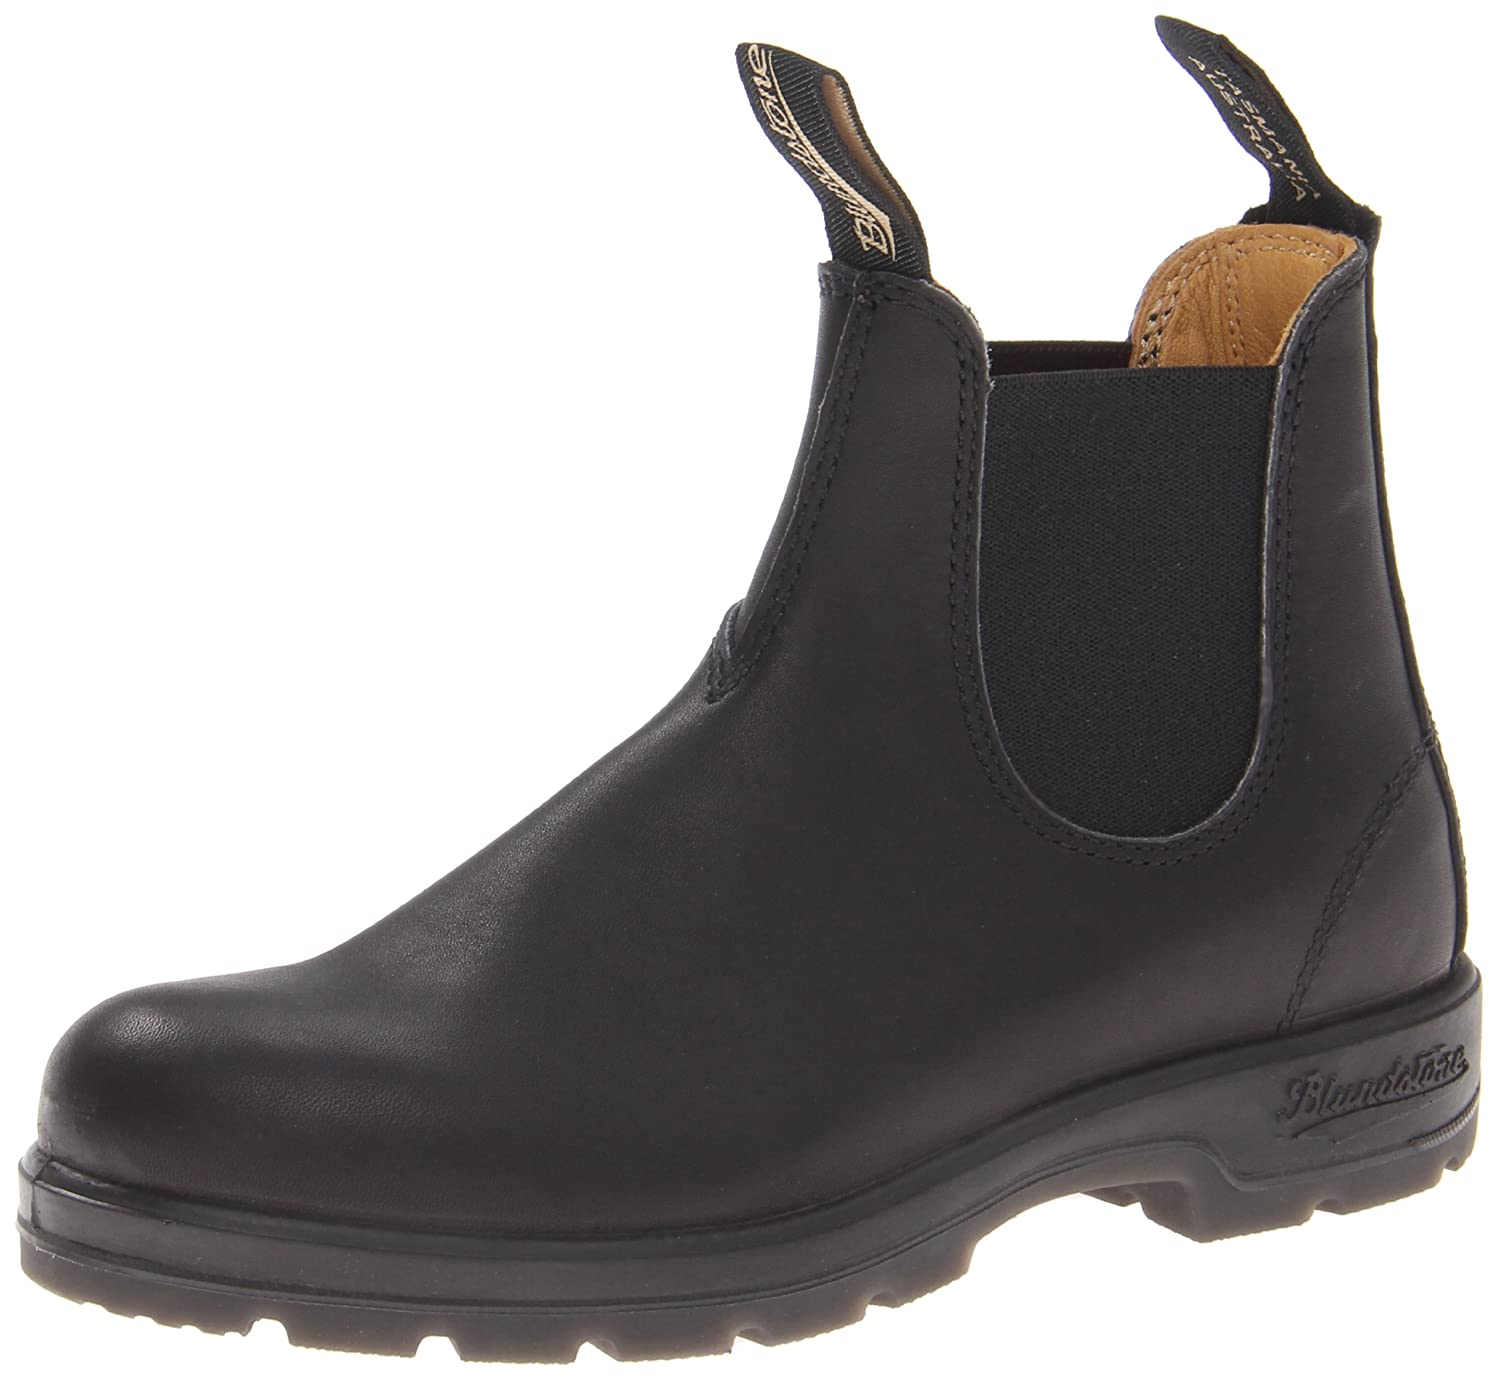 Blundstone Women's Blundstone 558 Black Boot B002FB625Y 3 AU (US Women's 5.5 M)|Black